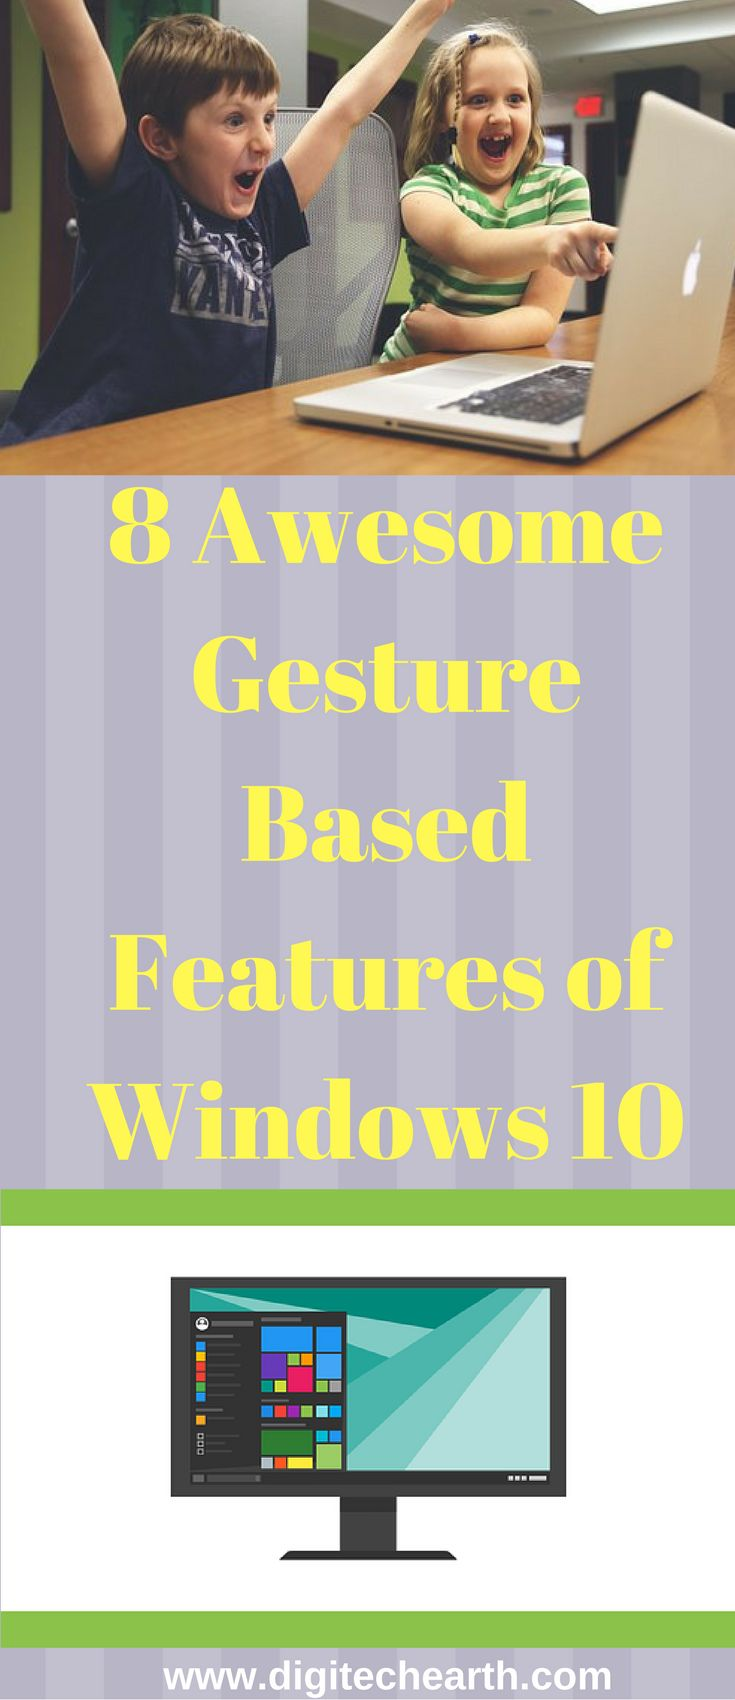 In Windows 10, there are some unique and useful gesture based features for the users that make their work easy and convenient. But most of the users are unaware of these features. These are 8 awesome gesture based features of windows 10 which works on one touch gestures like in any smart phone.